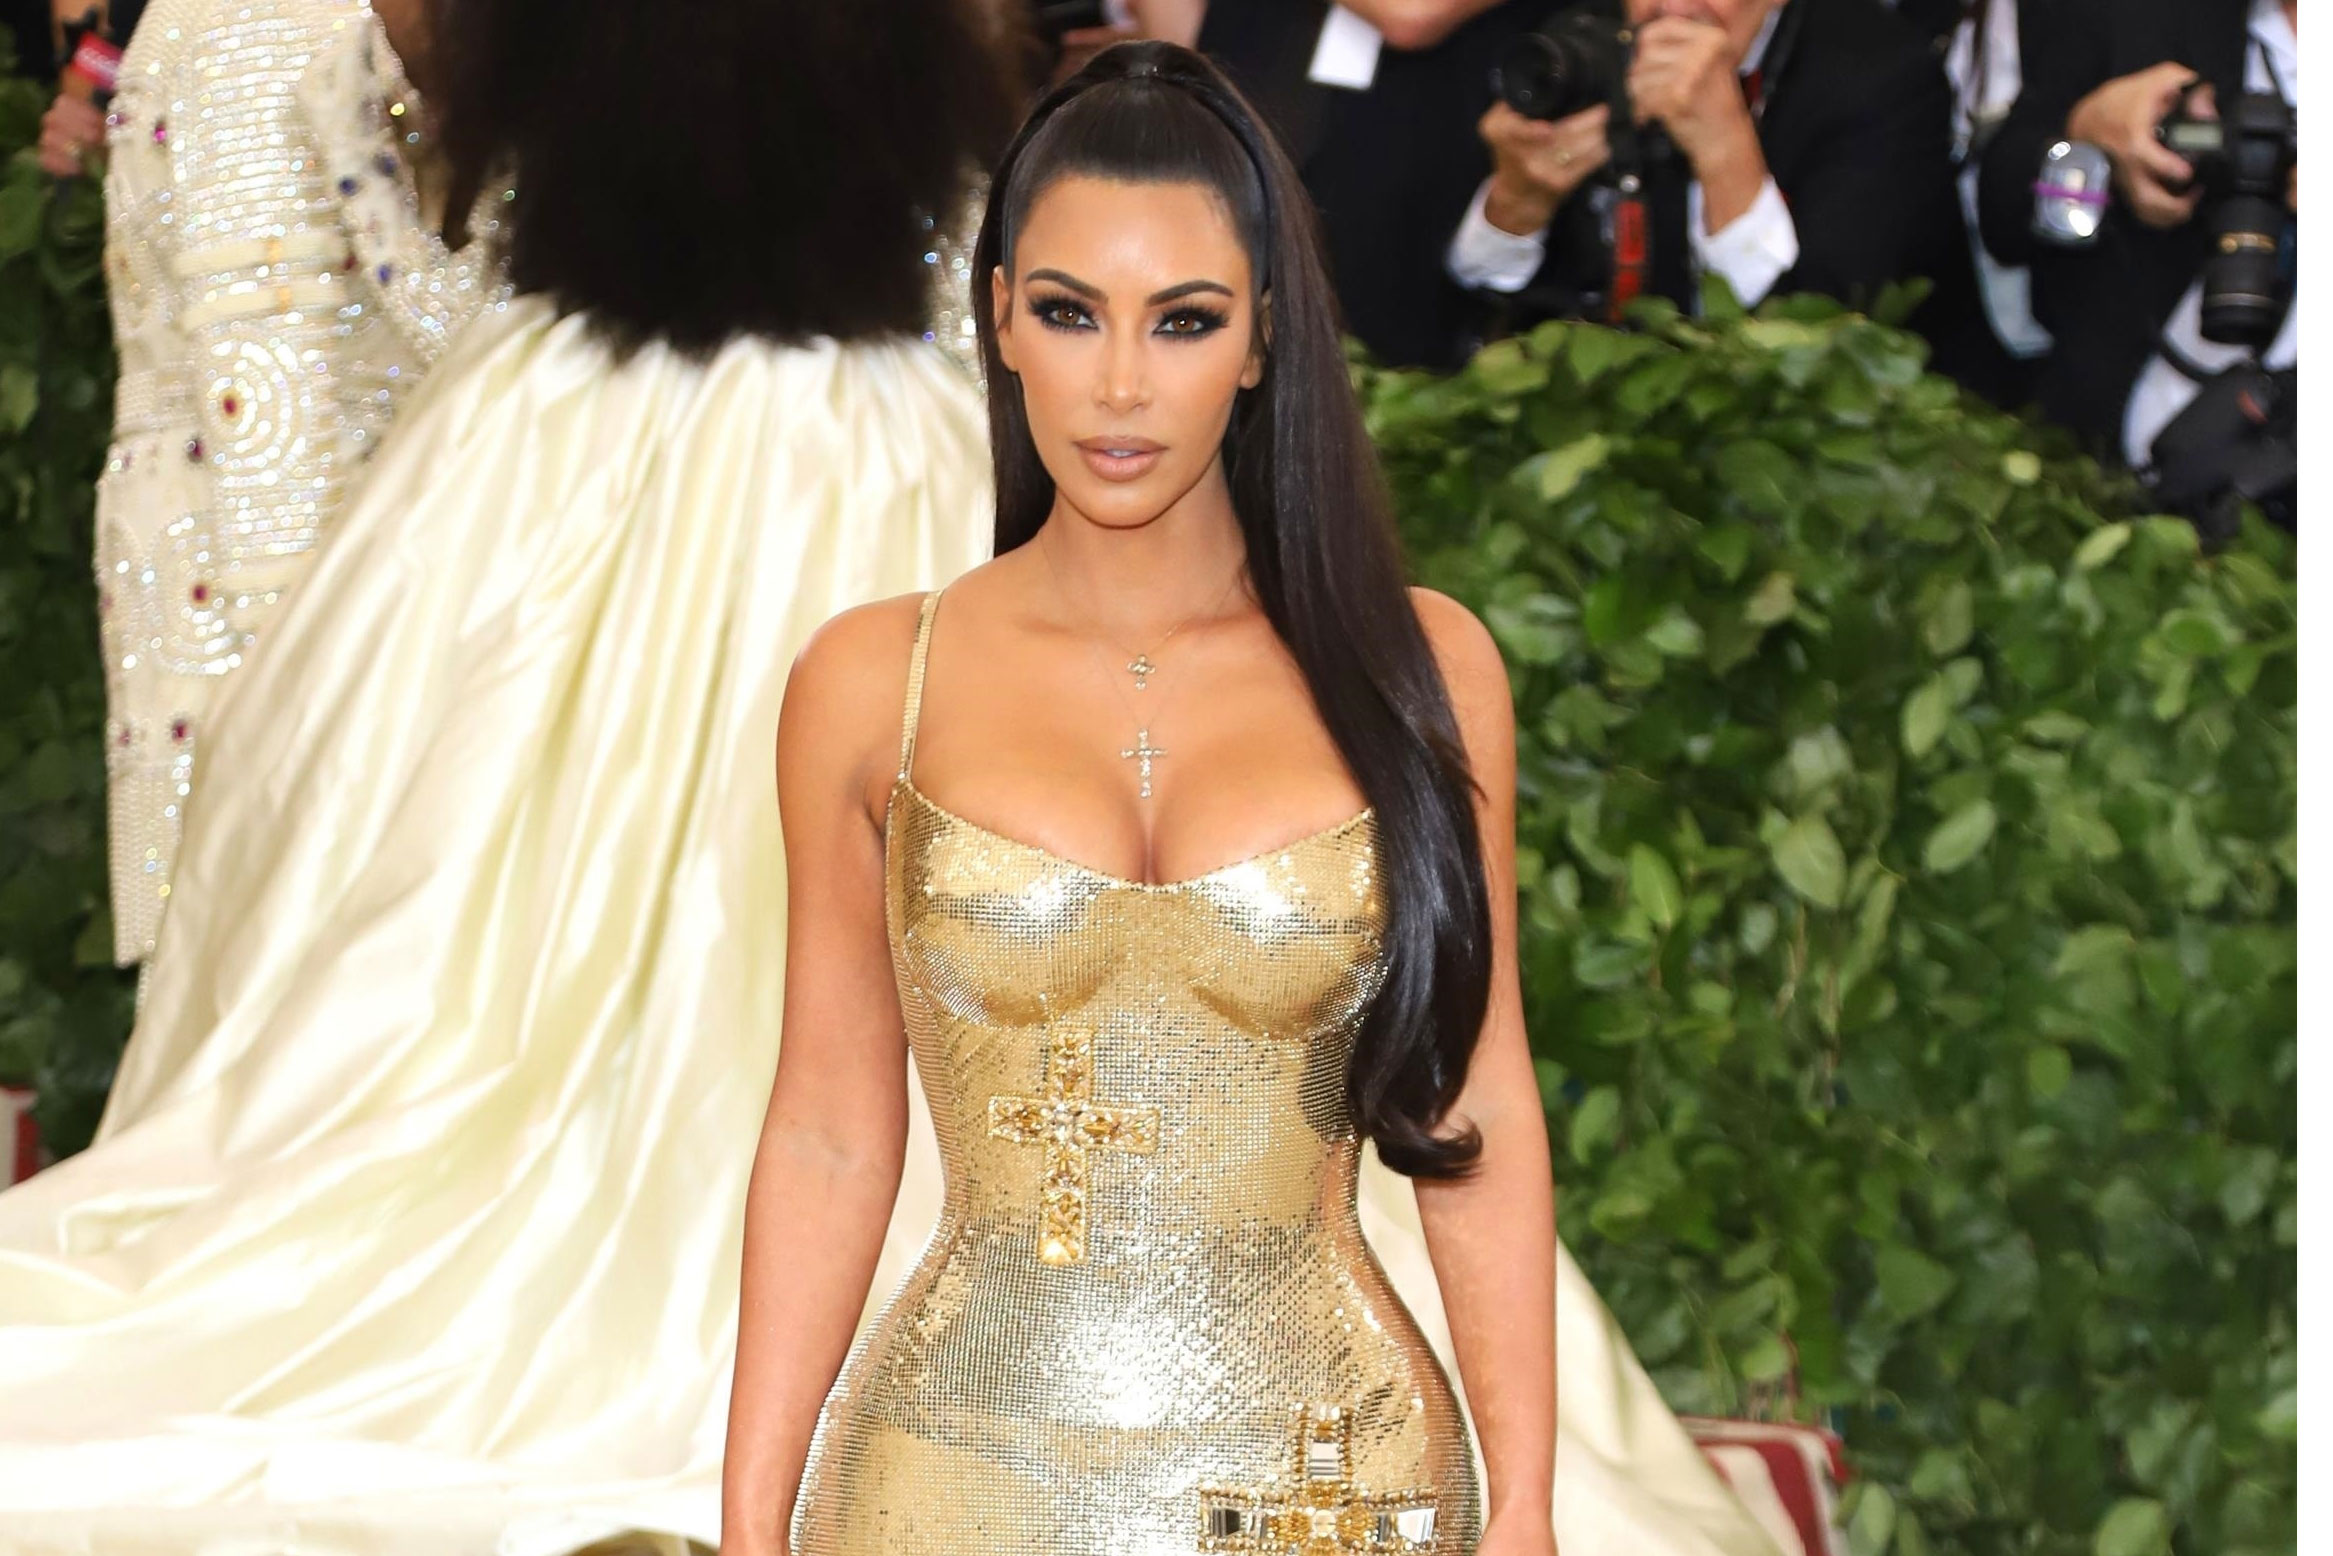 Why Kanye West Did Not Attend The Met Gala With Kim Kardashian